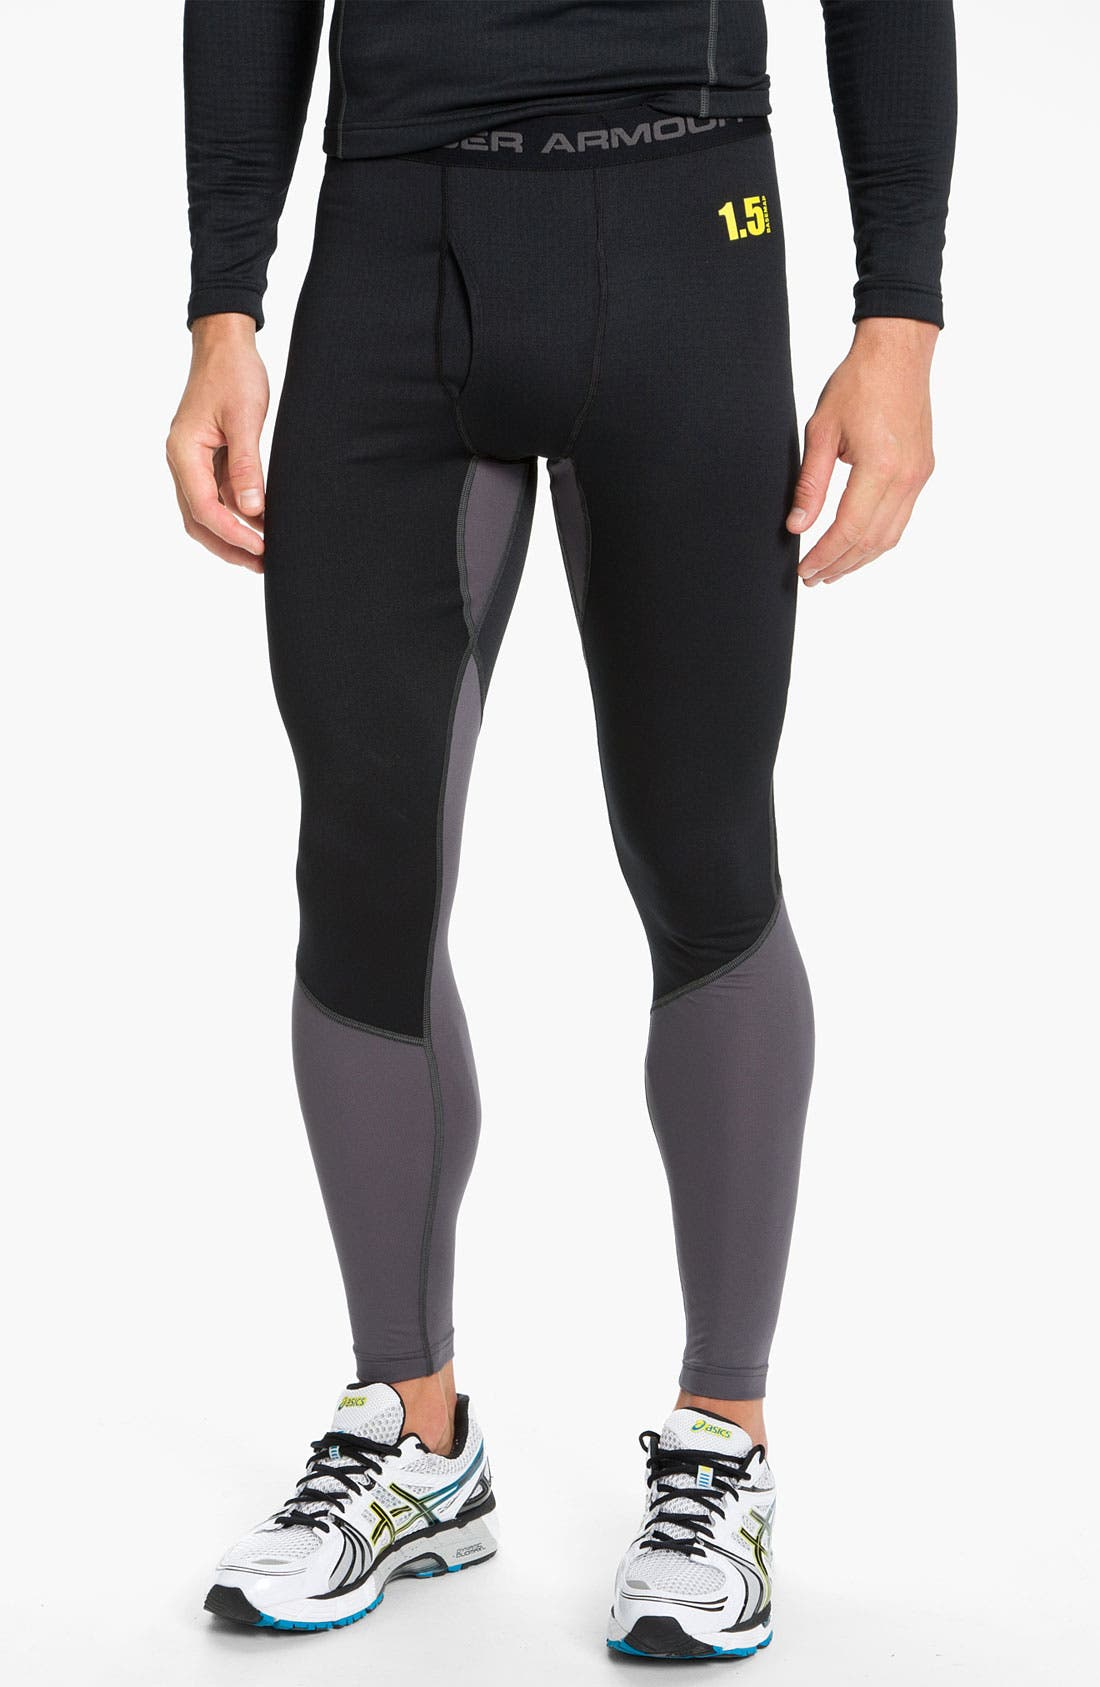 Alternate Image 1 Selected - Under Armour 'Basemap 1.5' Leggings (Online Exclusive)